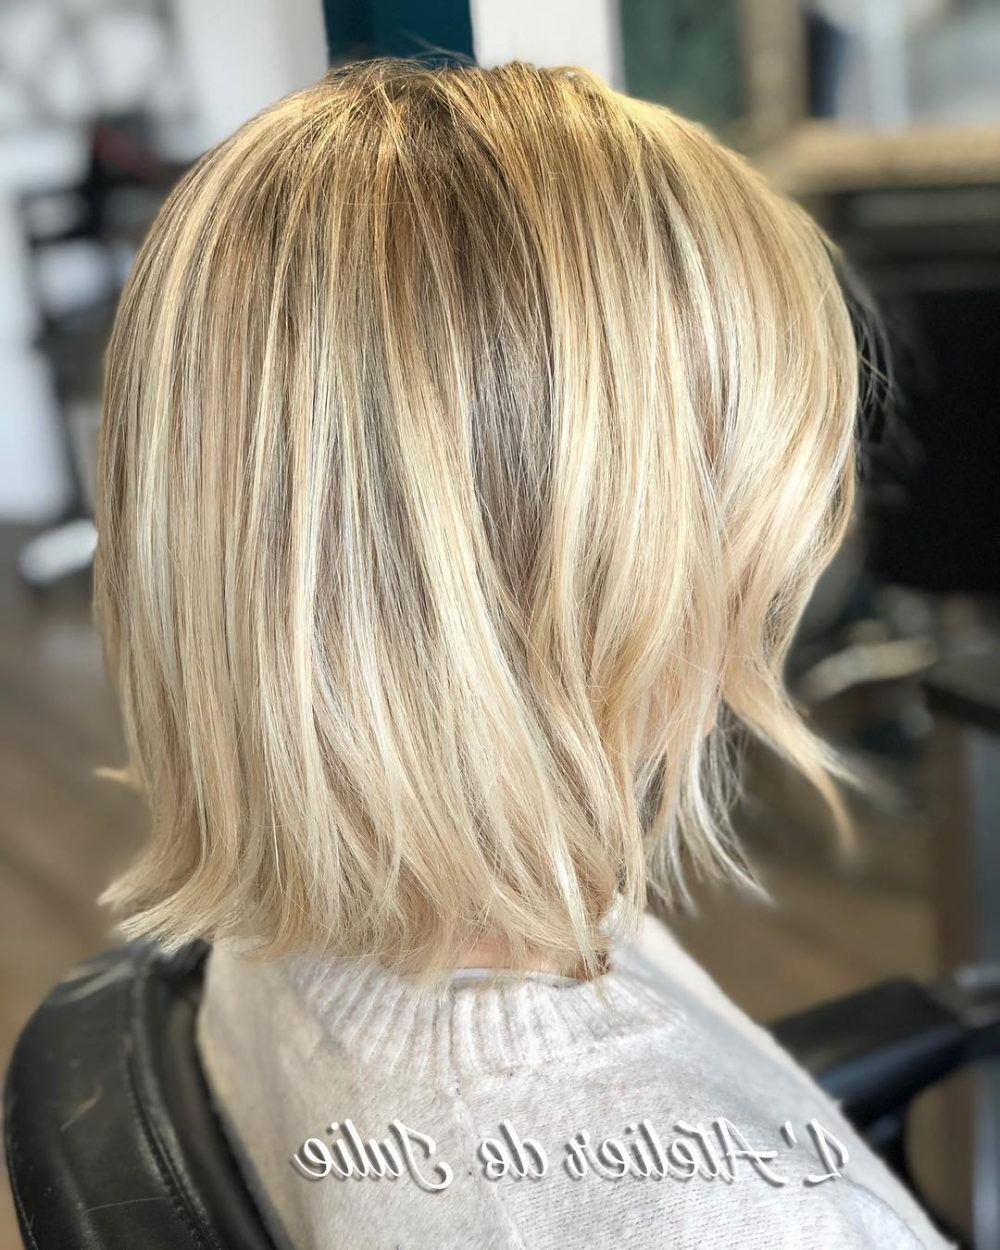 34 Perfect Short Haircuts And Hairstyles For Thin Hair (2019) Within Well Known Messy Layered Haircuts For Fine Hair (Gallery 3 of 20)